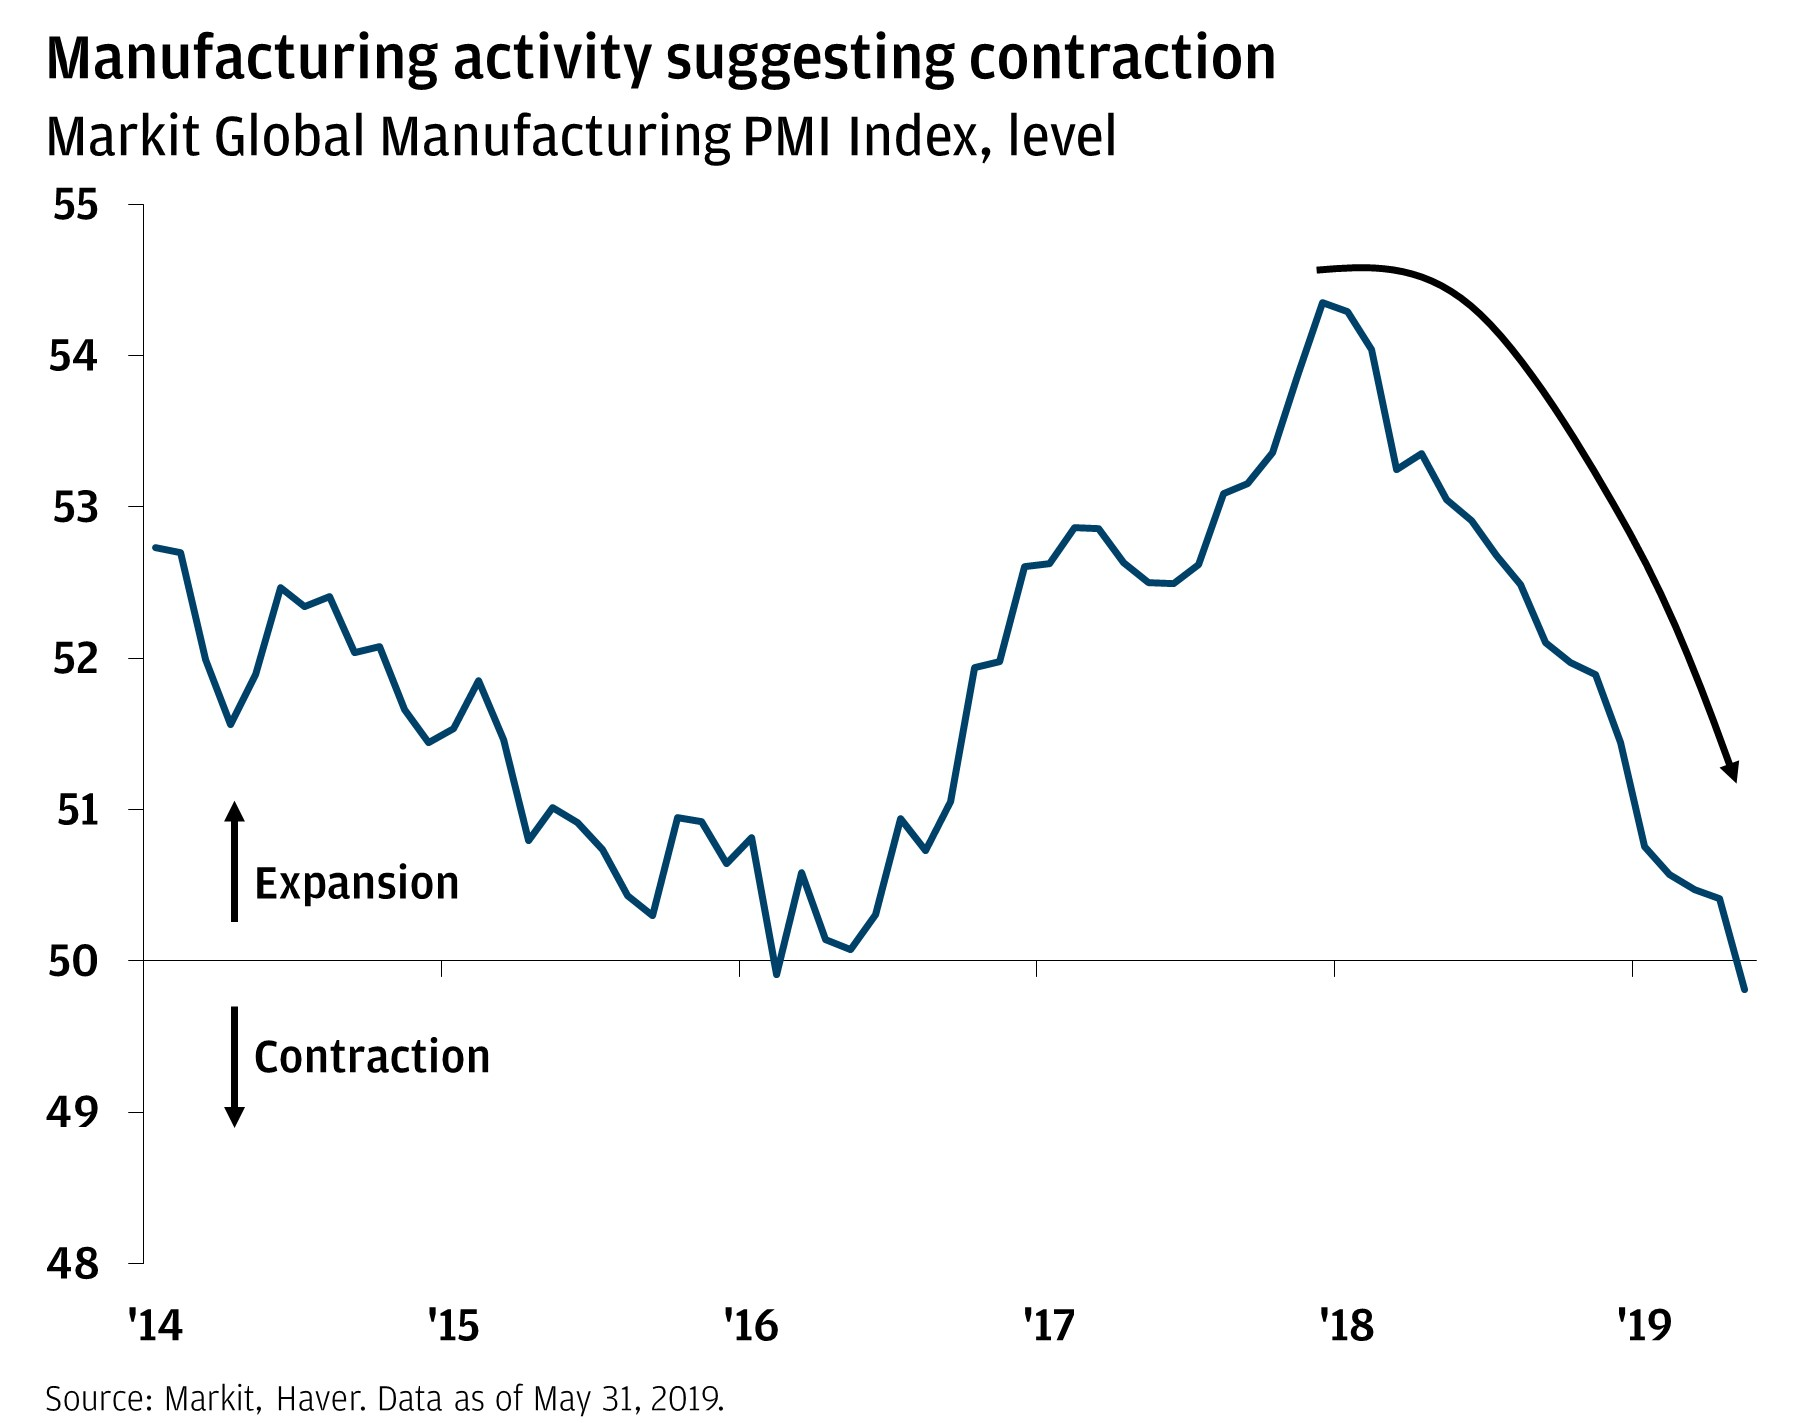 Manufacturing activity suggesting contraction Line chart shows Markit Global Manufacturing PMI Index level from 2014 through 2019. The line reached its peak at the end of 2018, and has since declined to reach its lowest level.